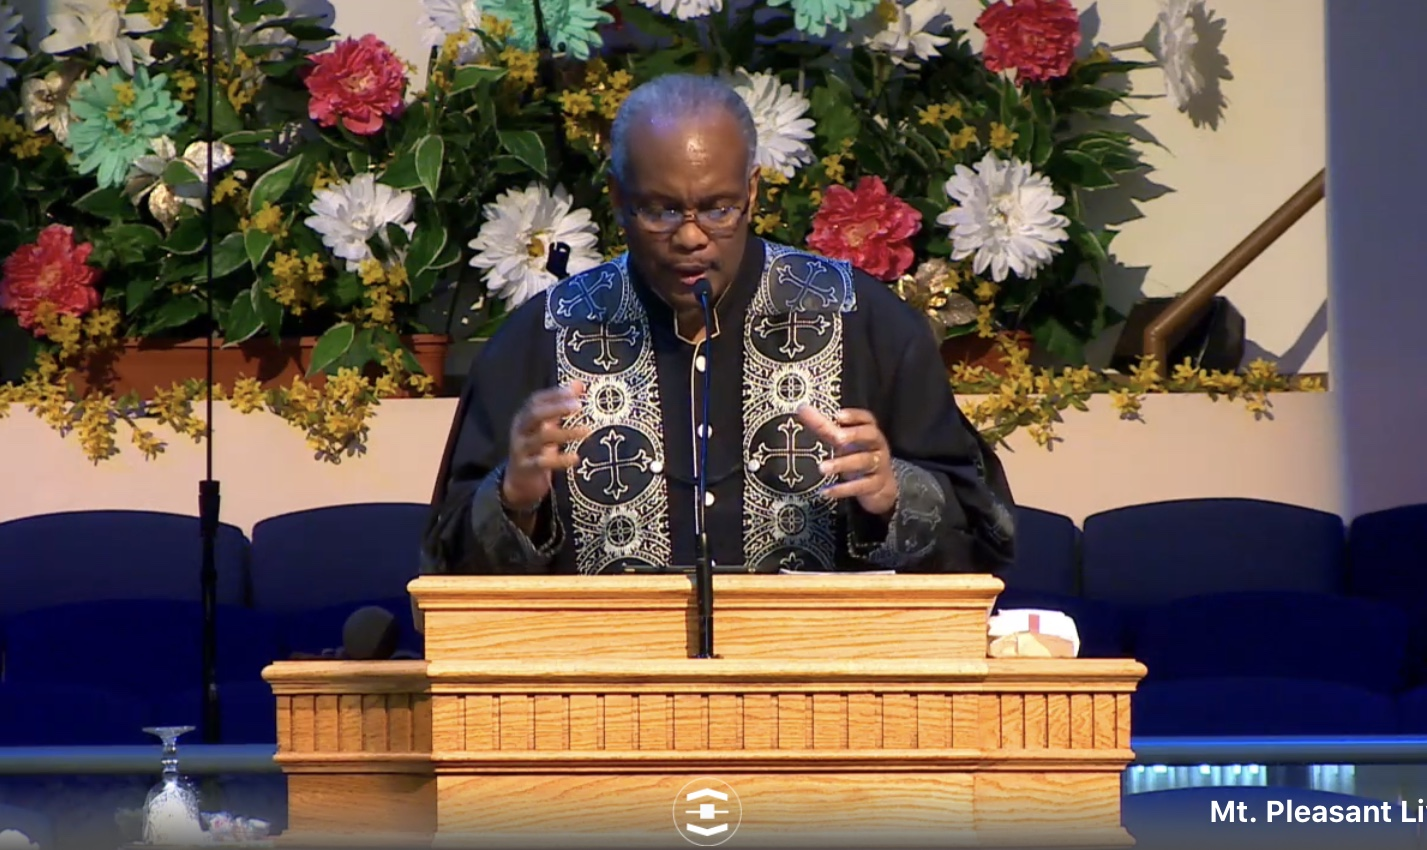 Tremendous Needs For Troublesome Times Rev. Dr. Willie E. Robinson